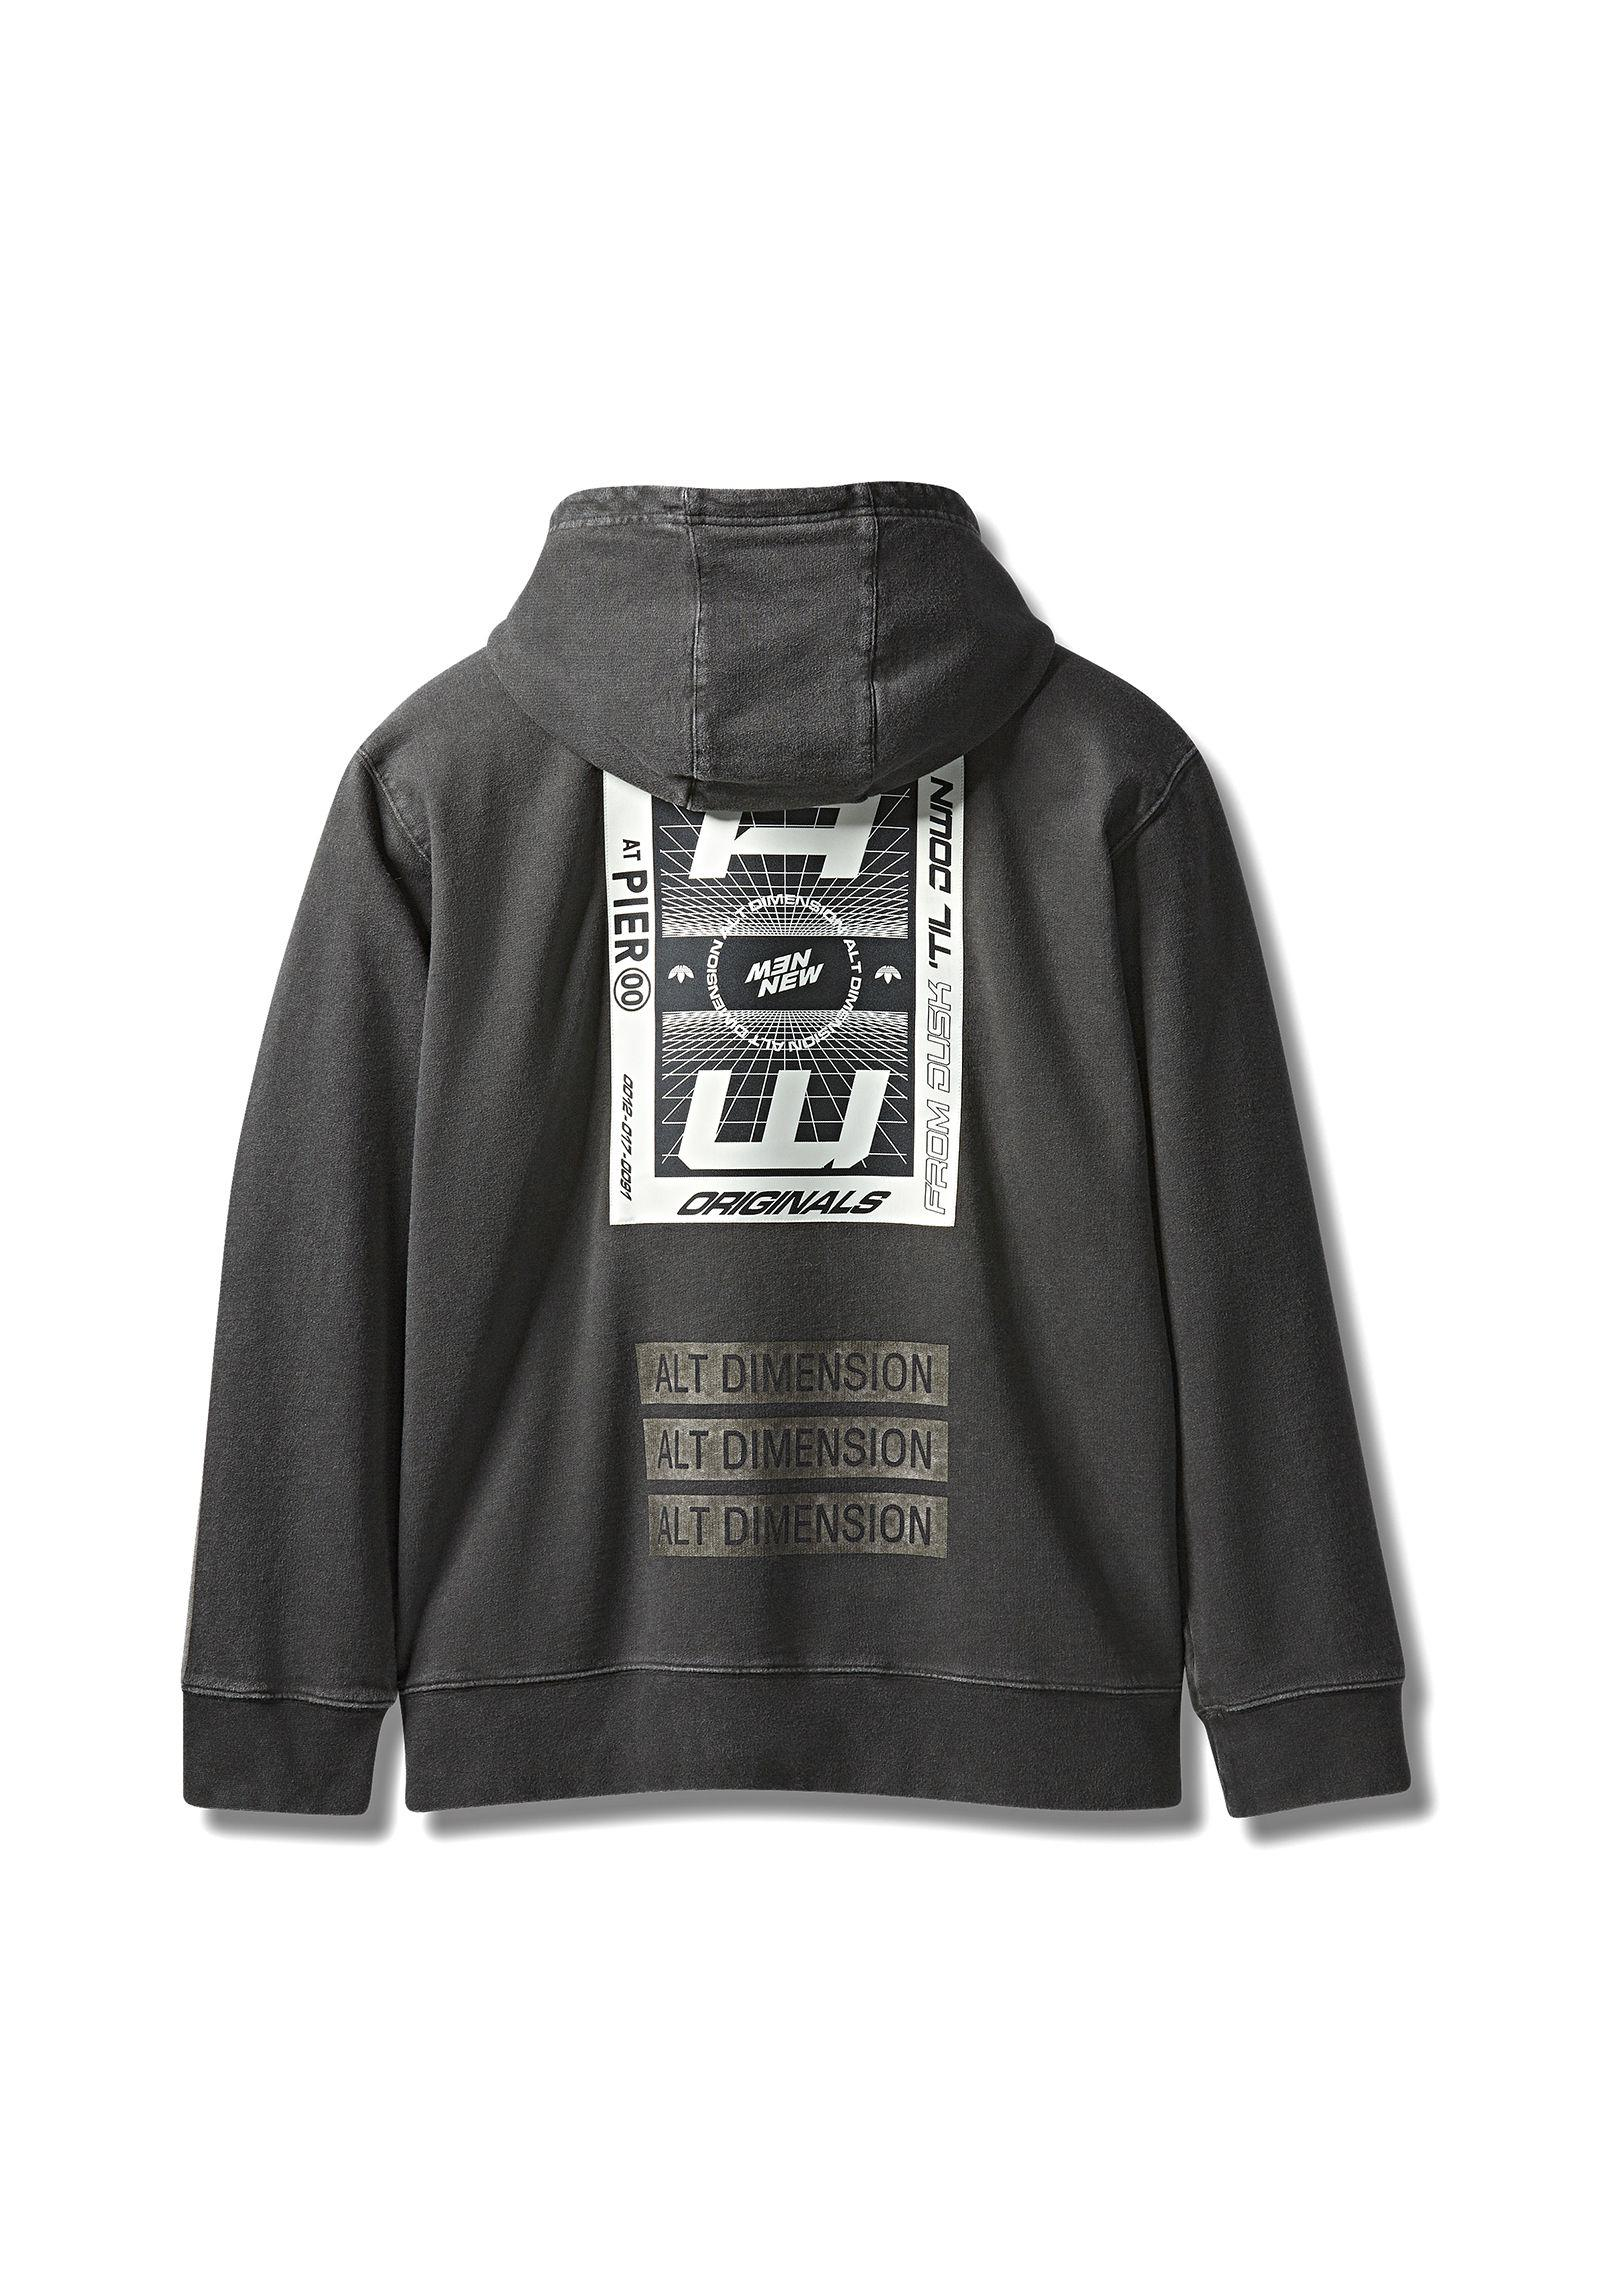 online store 100% quality cheap for sale Adidas Originals By Aw Bleach Hoodie